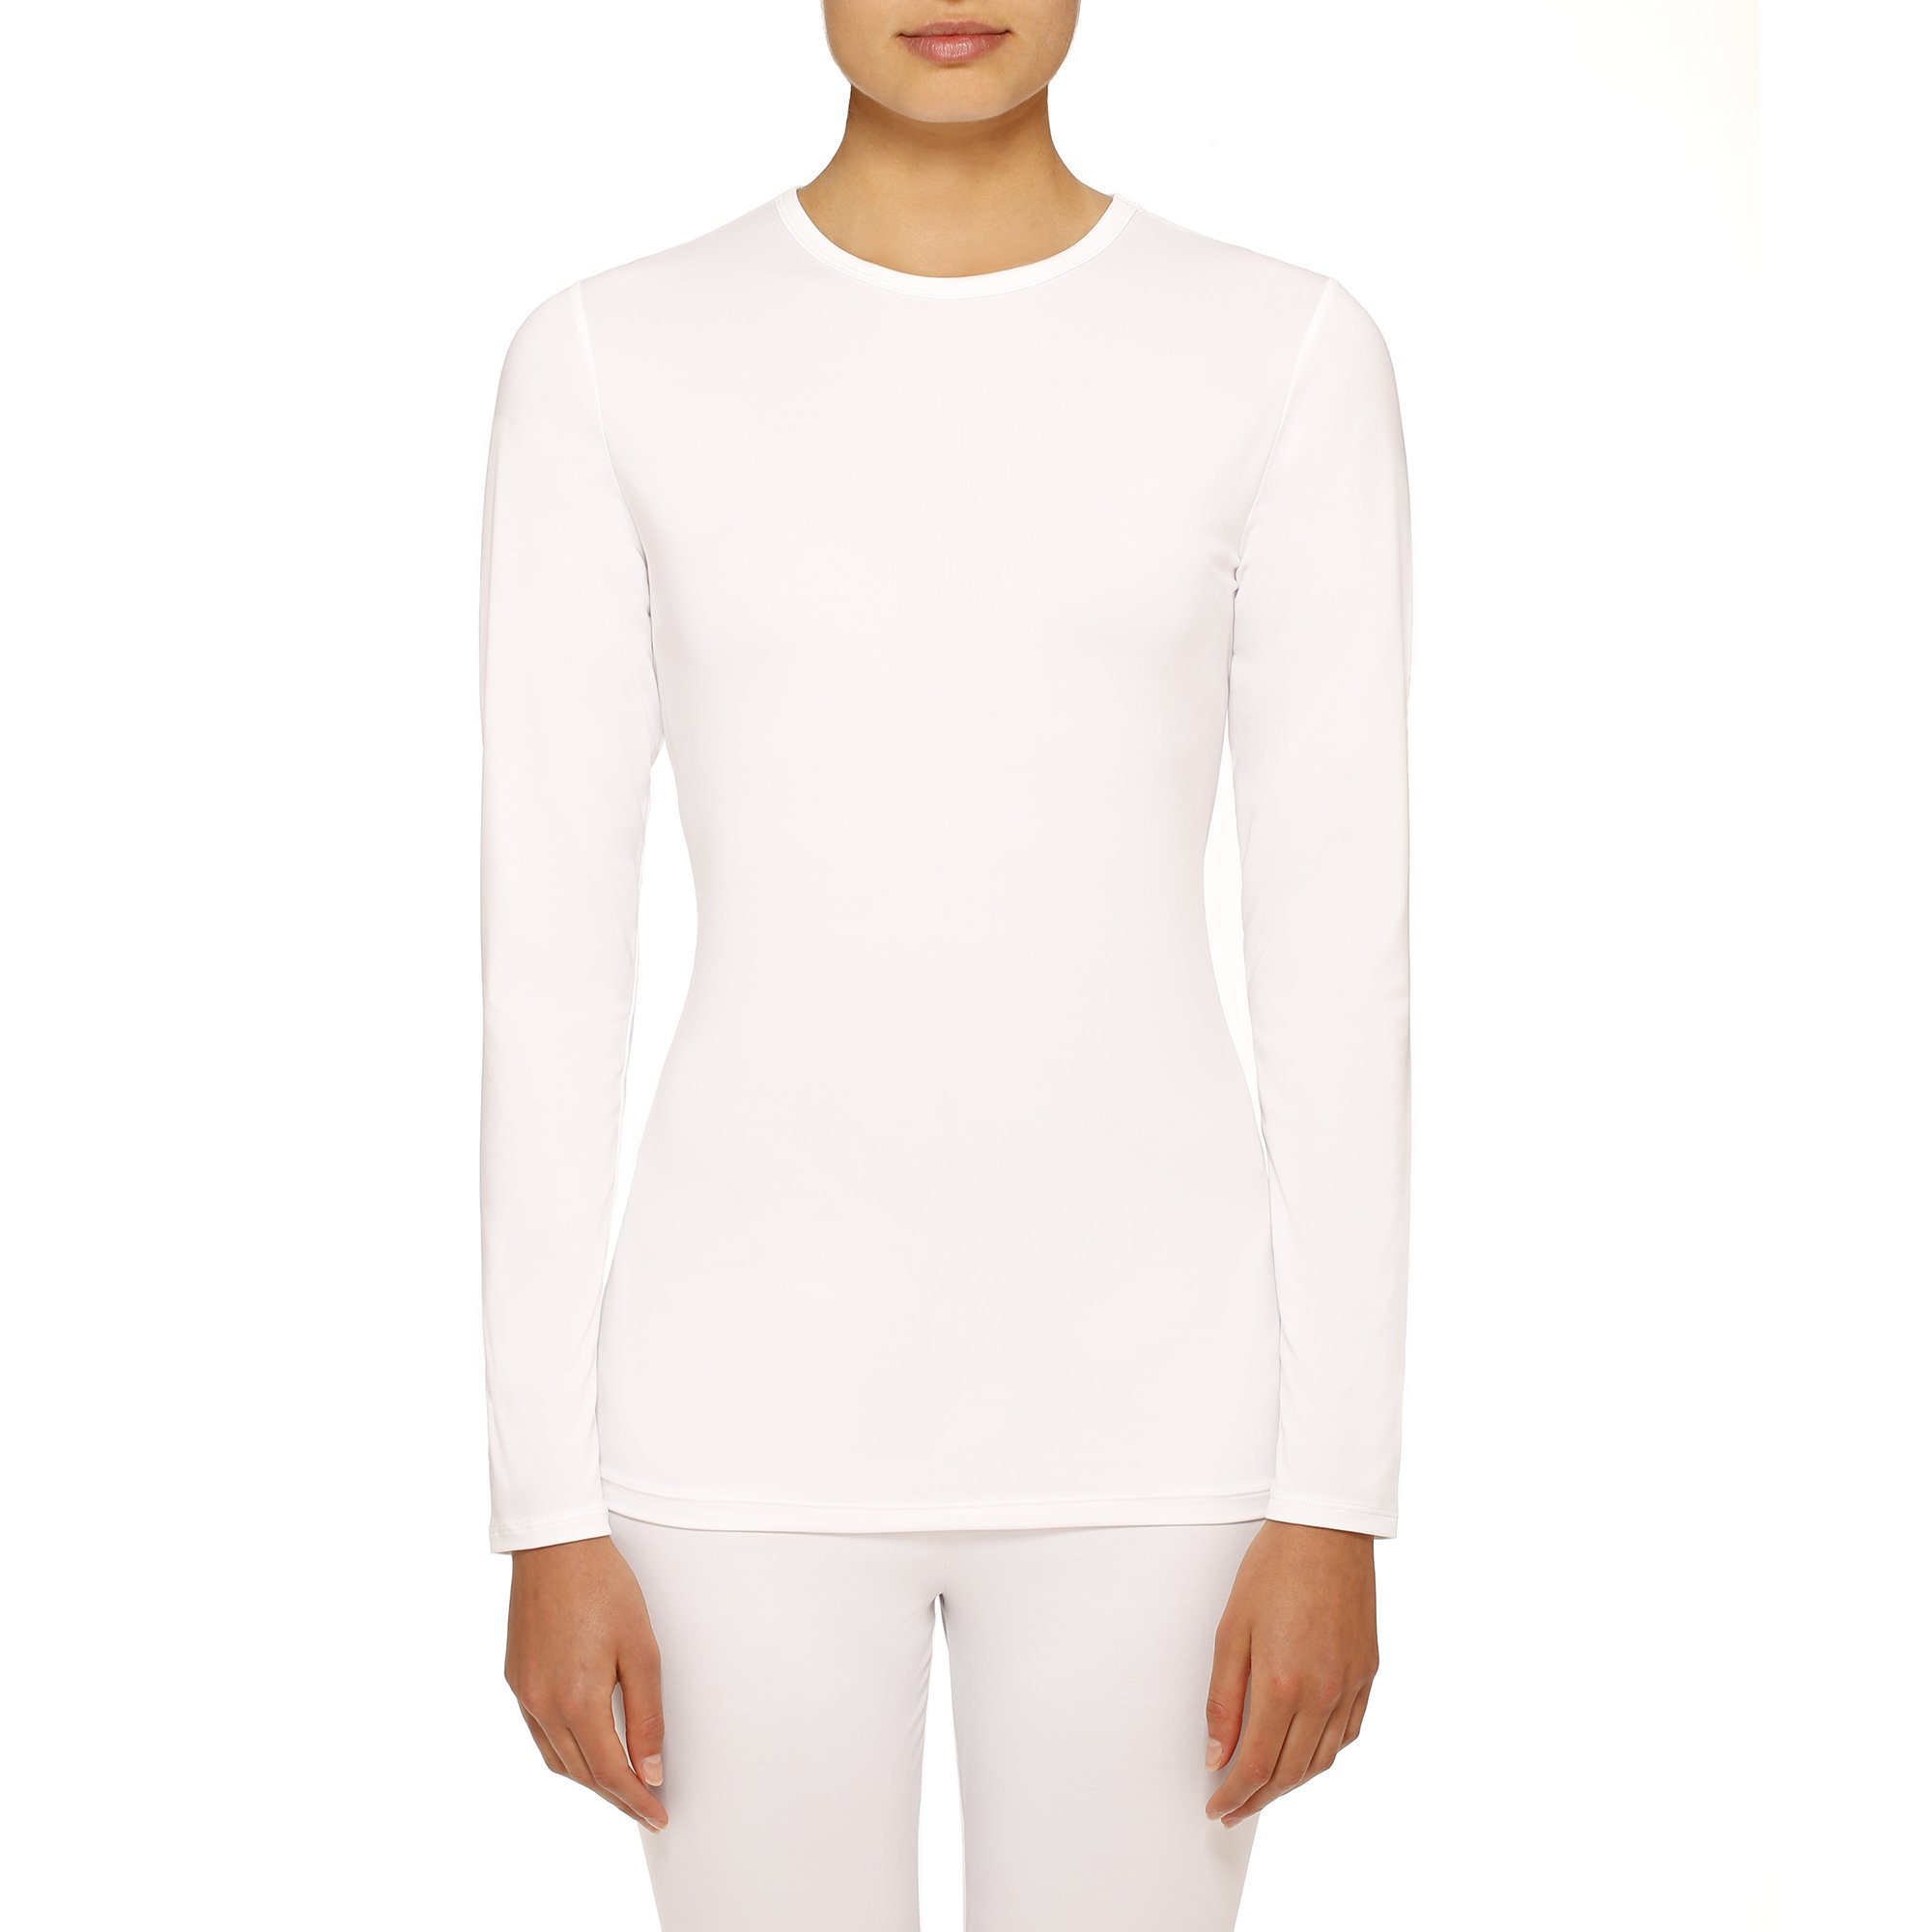 Womens Climate Right Thermal Top, Large, White